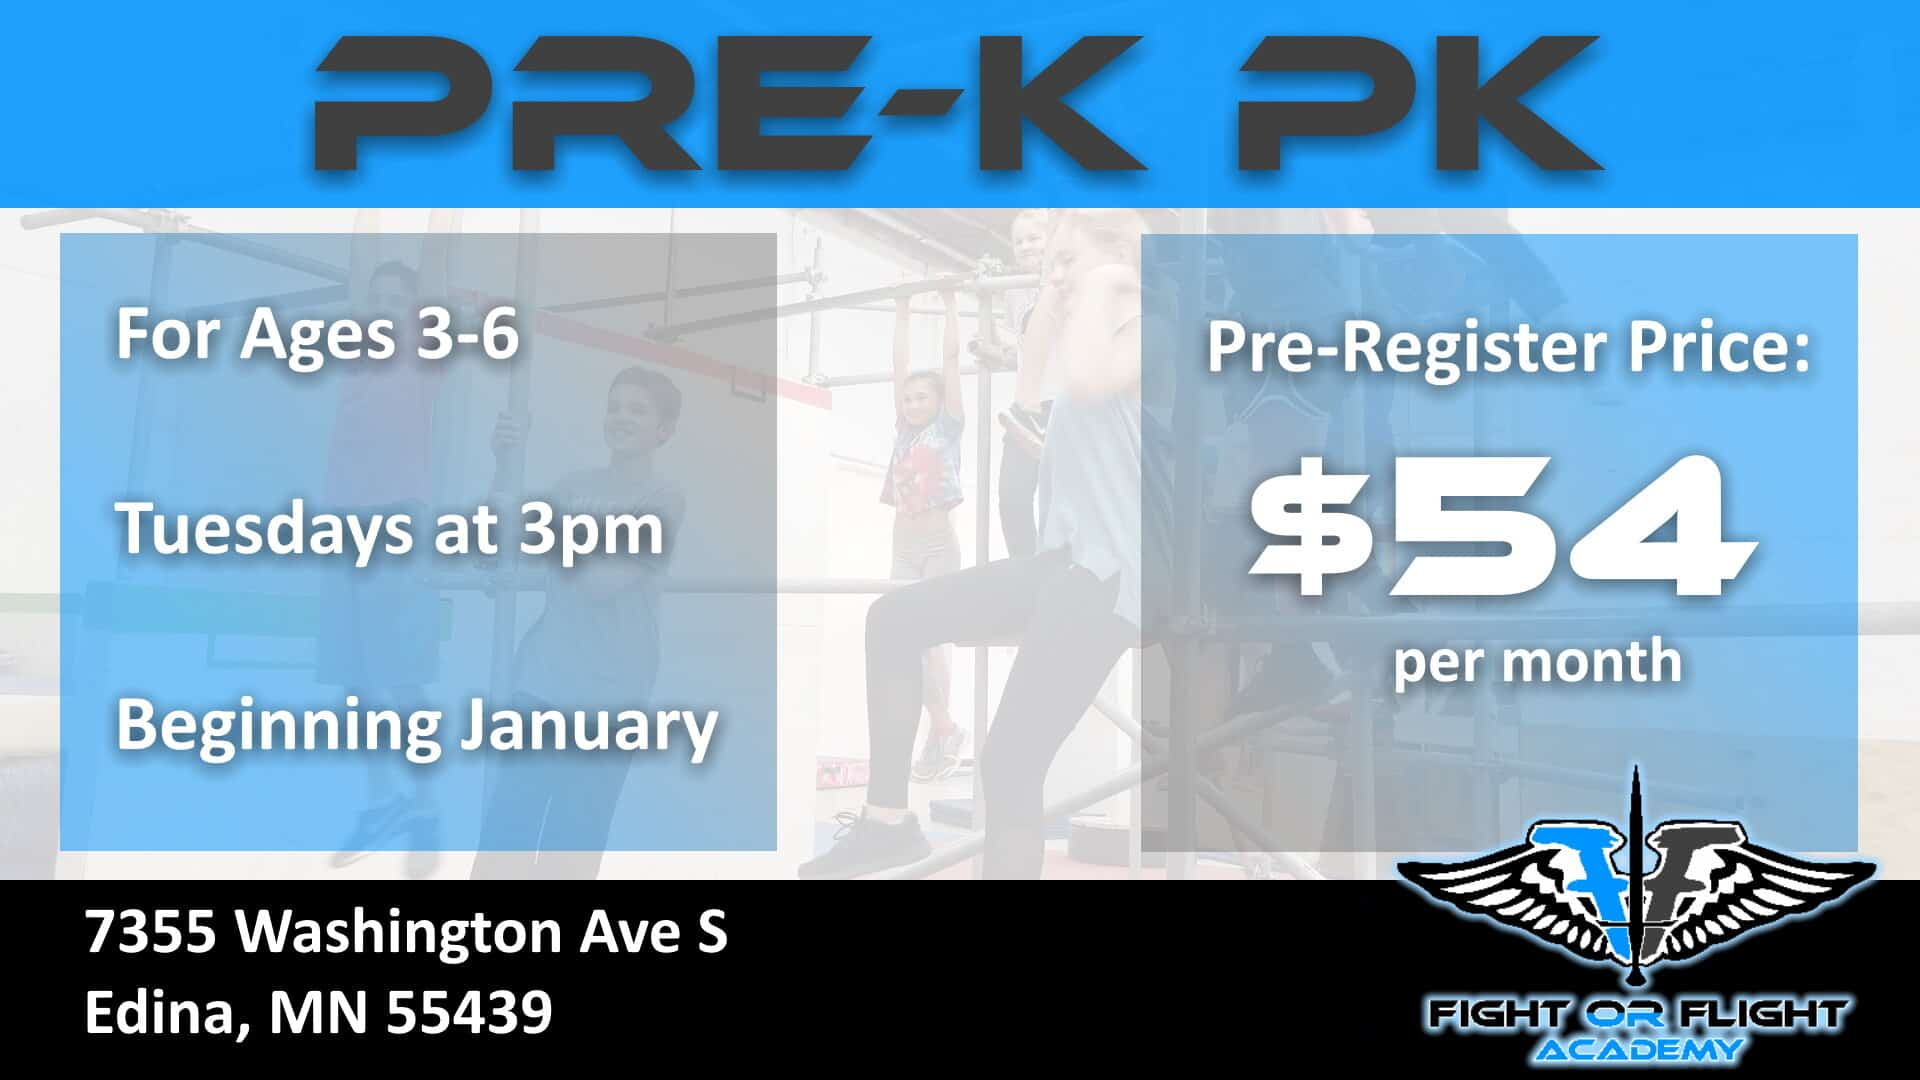 New Pre-K Parkour Class for Ages 3-6 Beginning January